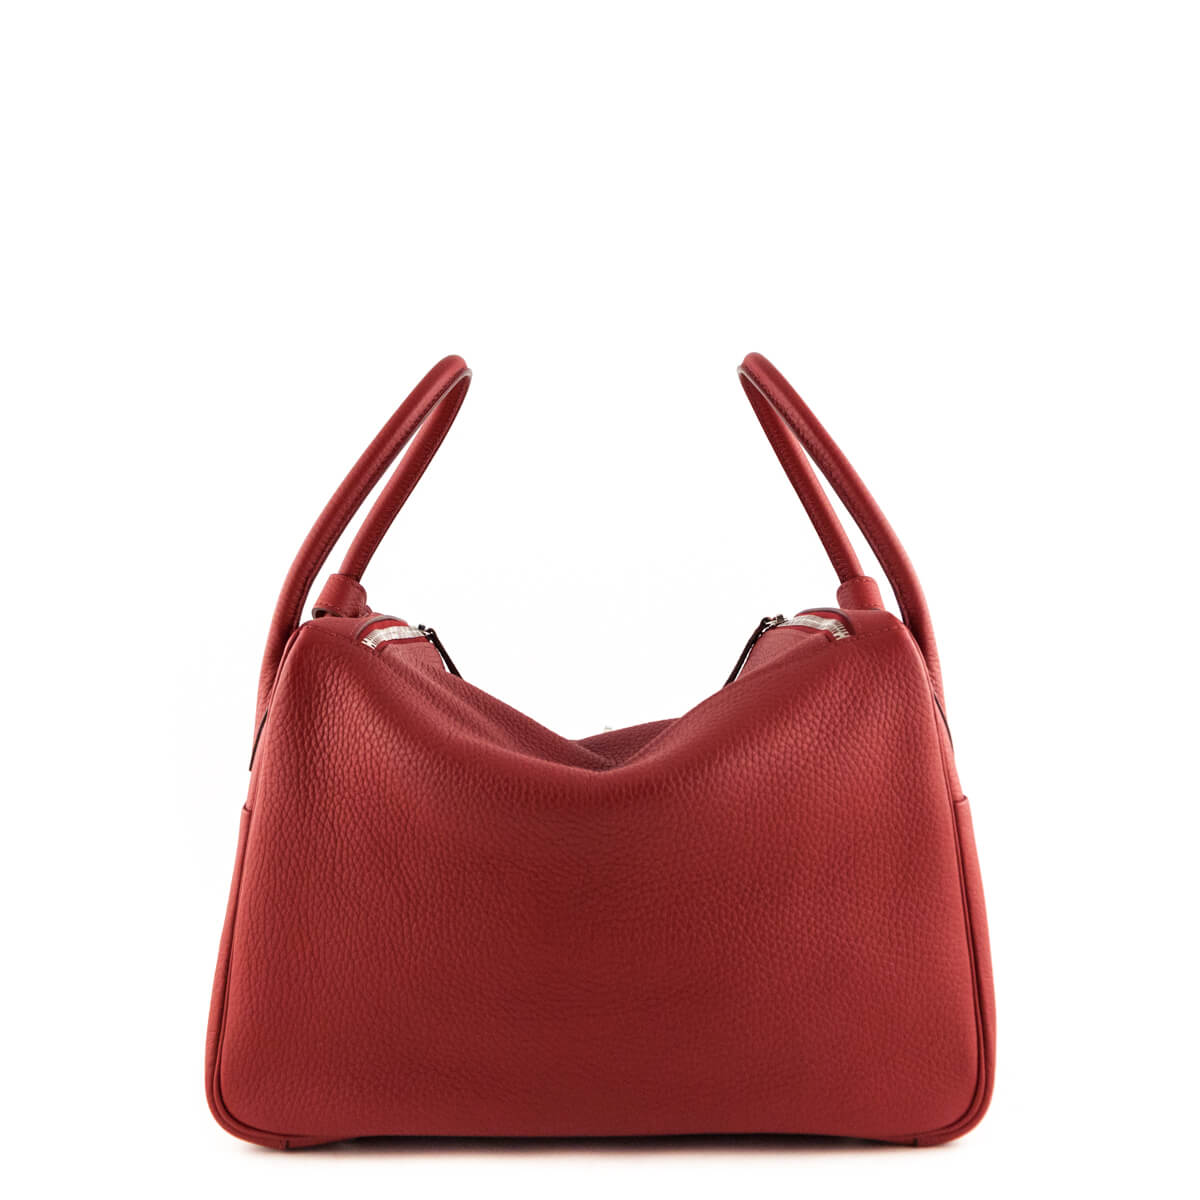 f053b9d95bc0 ... Hermes Rouge Garance Clemence Lindy 34 - LOVE that BAG - Preowned  Authentic Designer Handbags ...